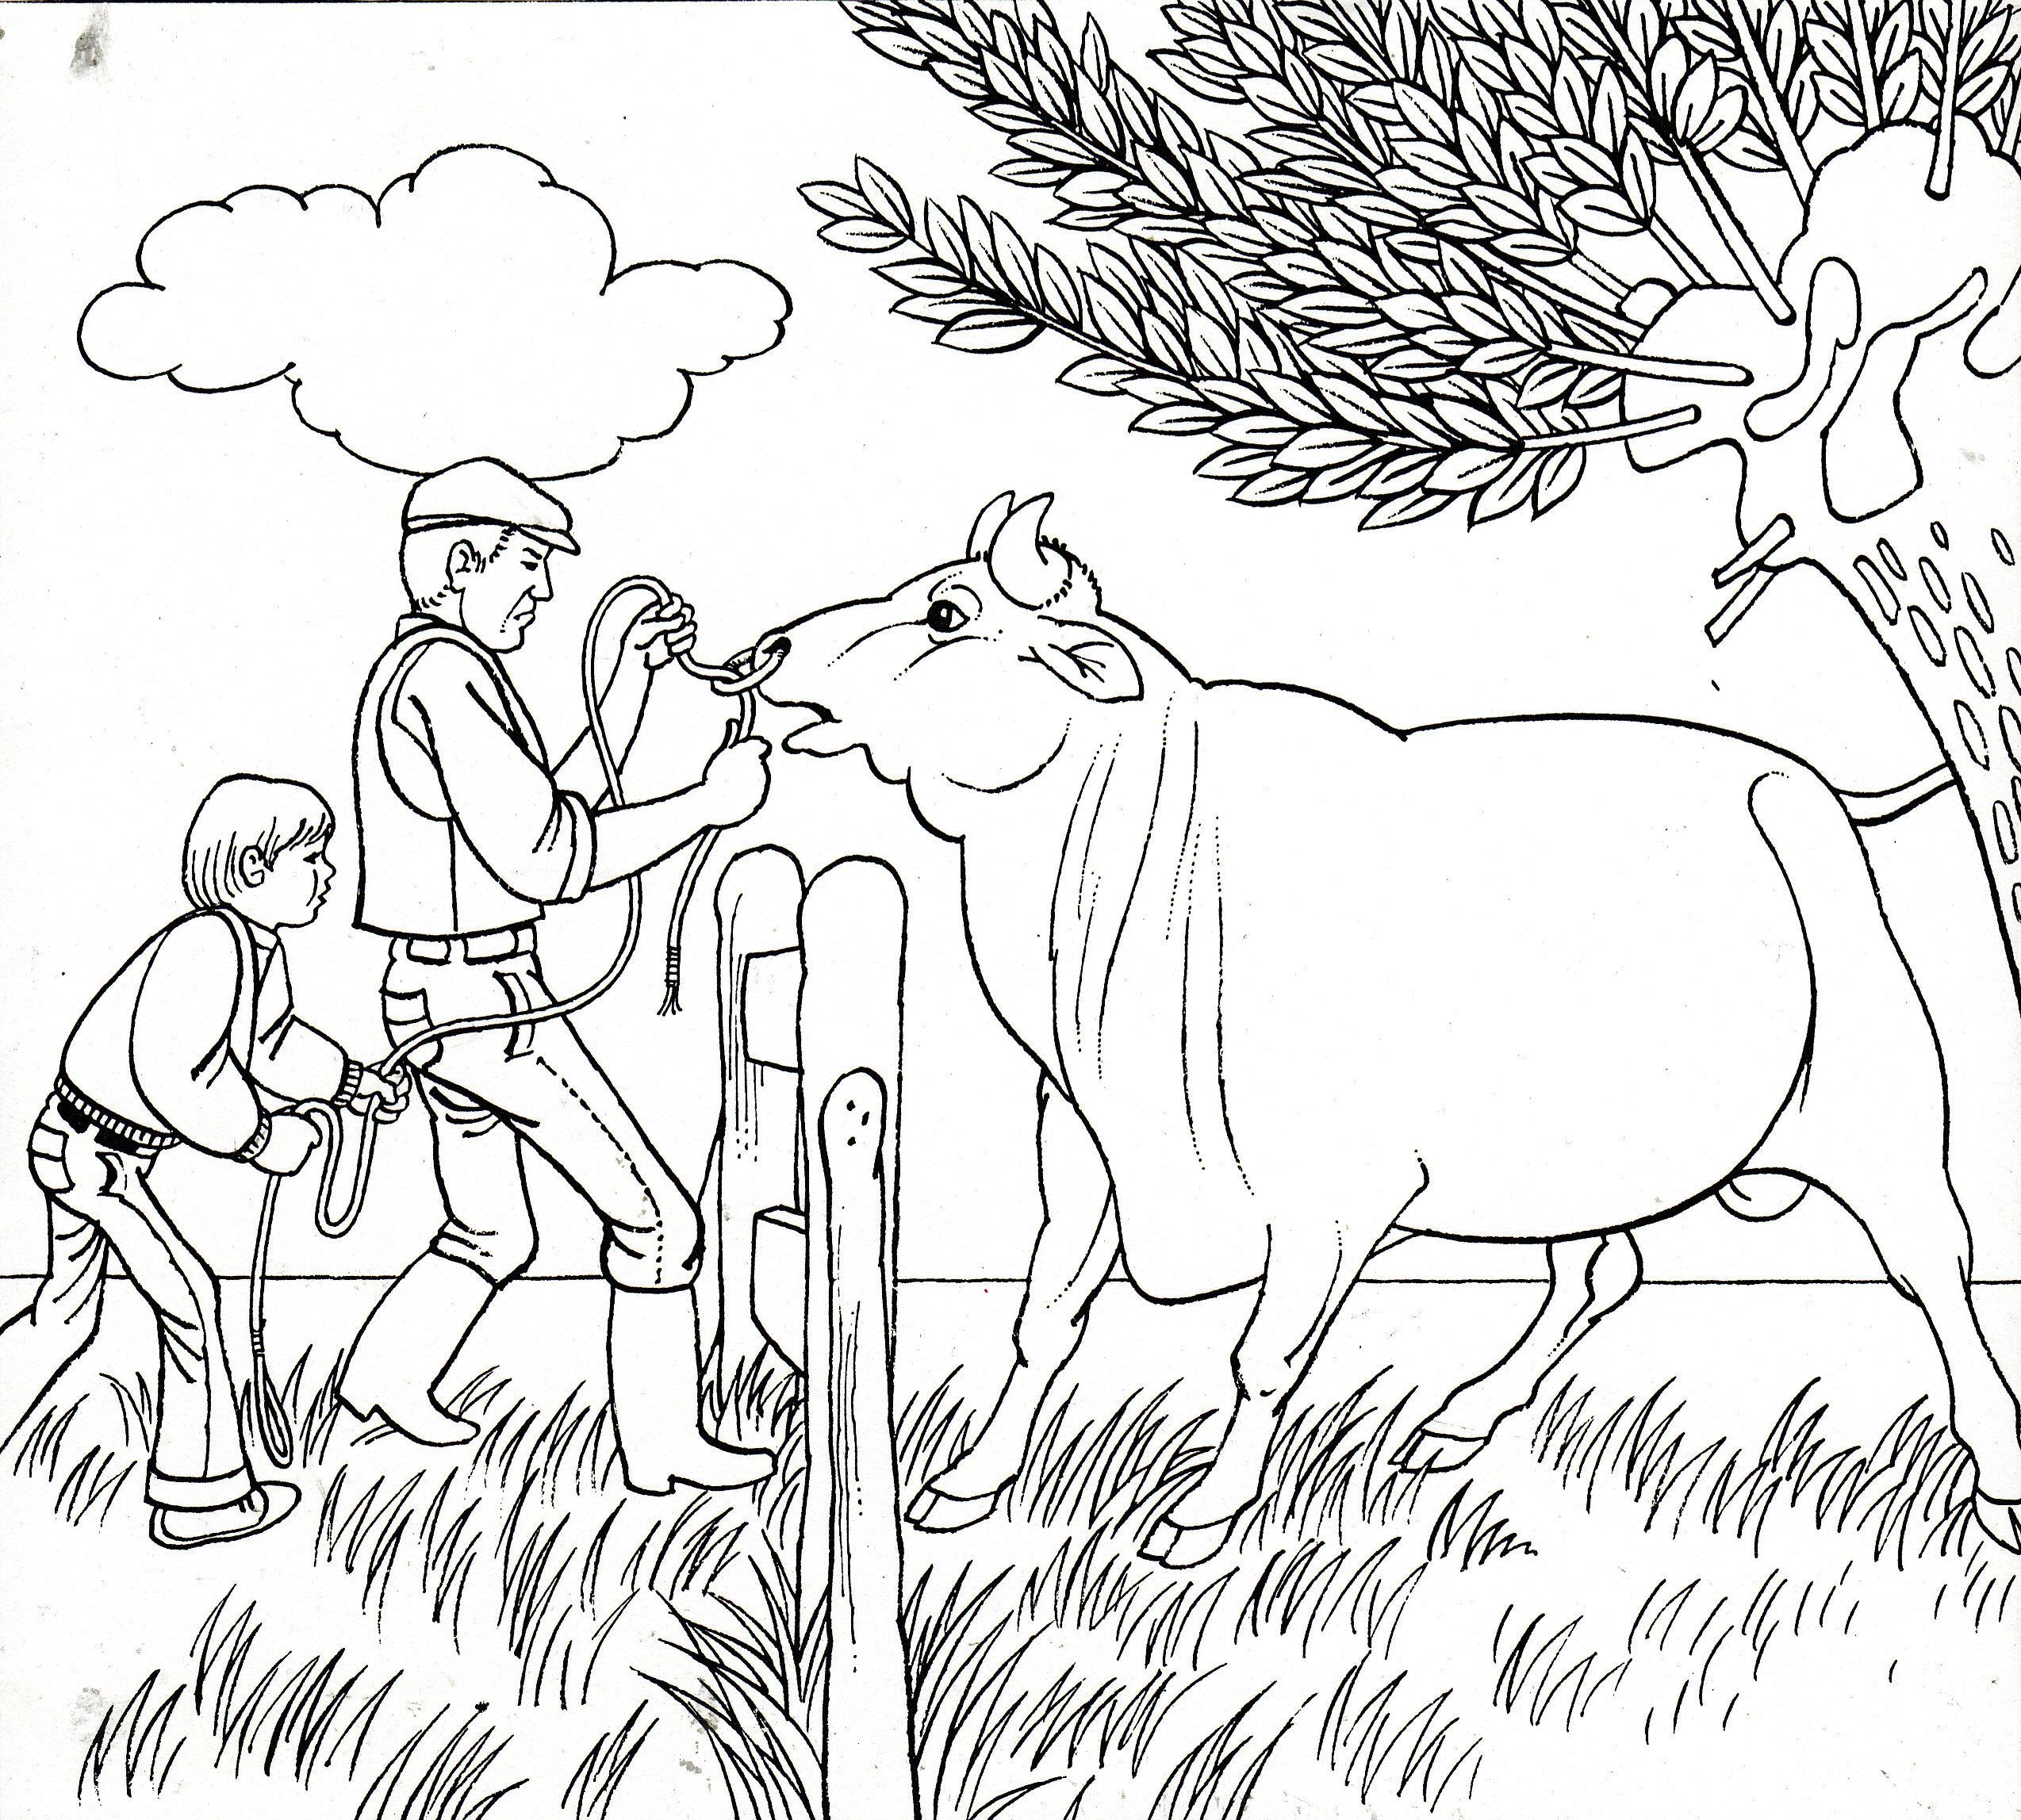 ub funkey coloring pages - photo#35